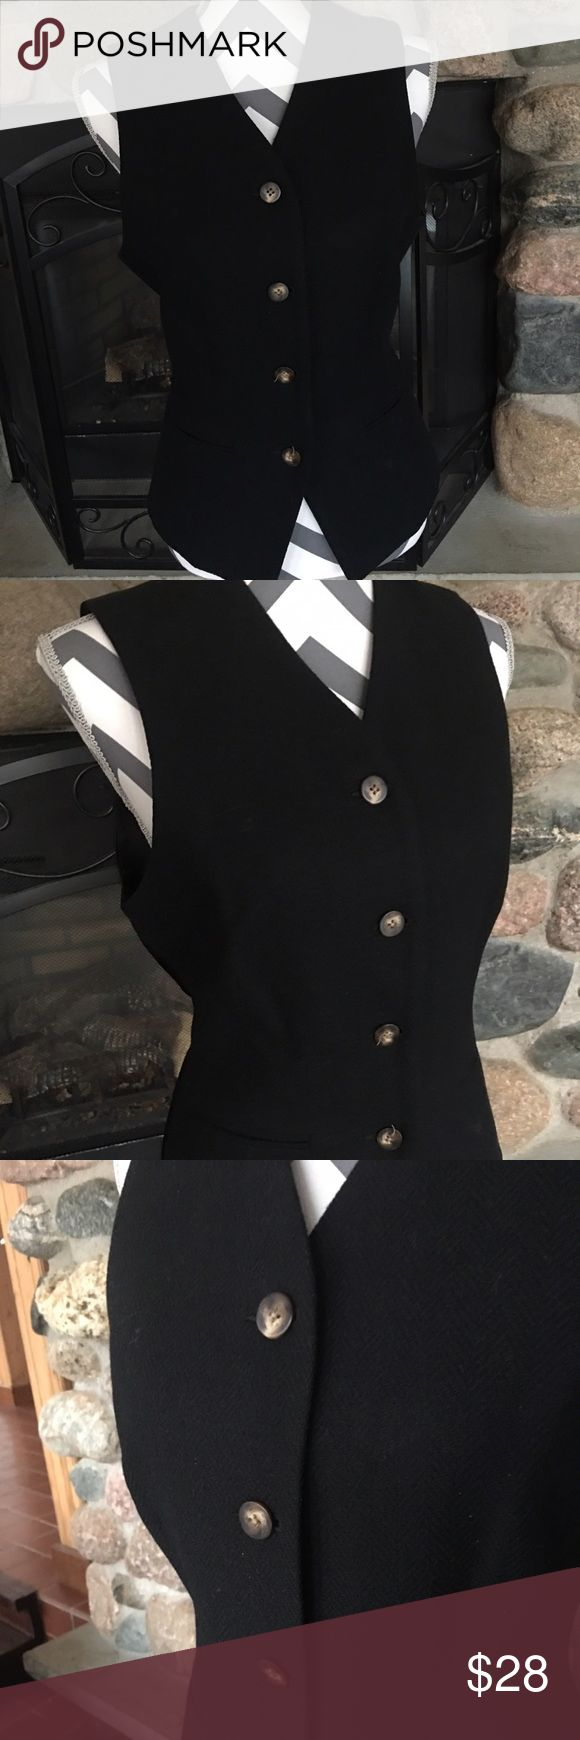 100% wool Land's Ends women's fashion vest Women's black fashion vest, size 4/6 with adjustable back 100% wool and nickel bottoms.  Beautiful and classy vest!!! Lands' End Jackets & Coats Vests